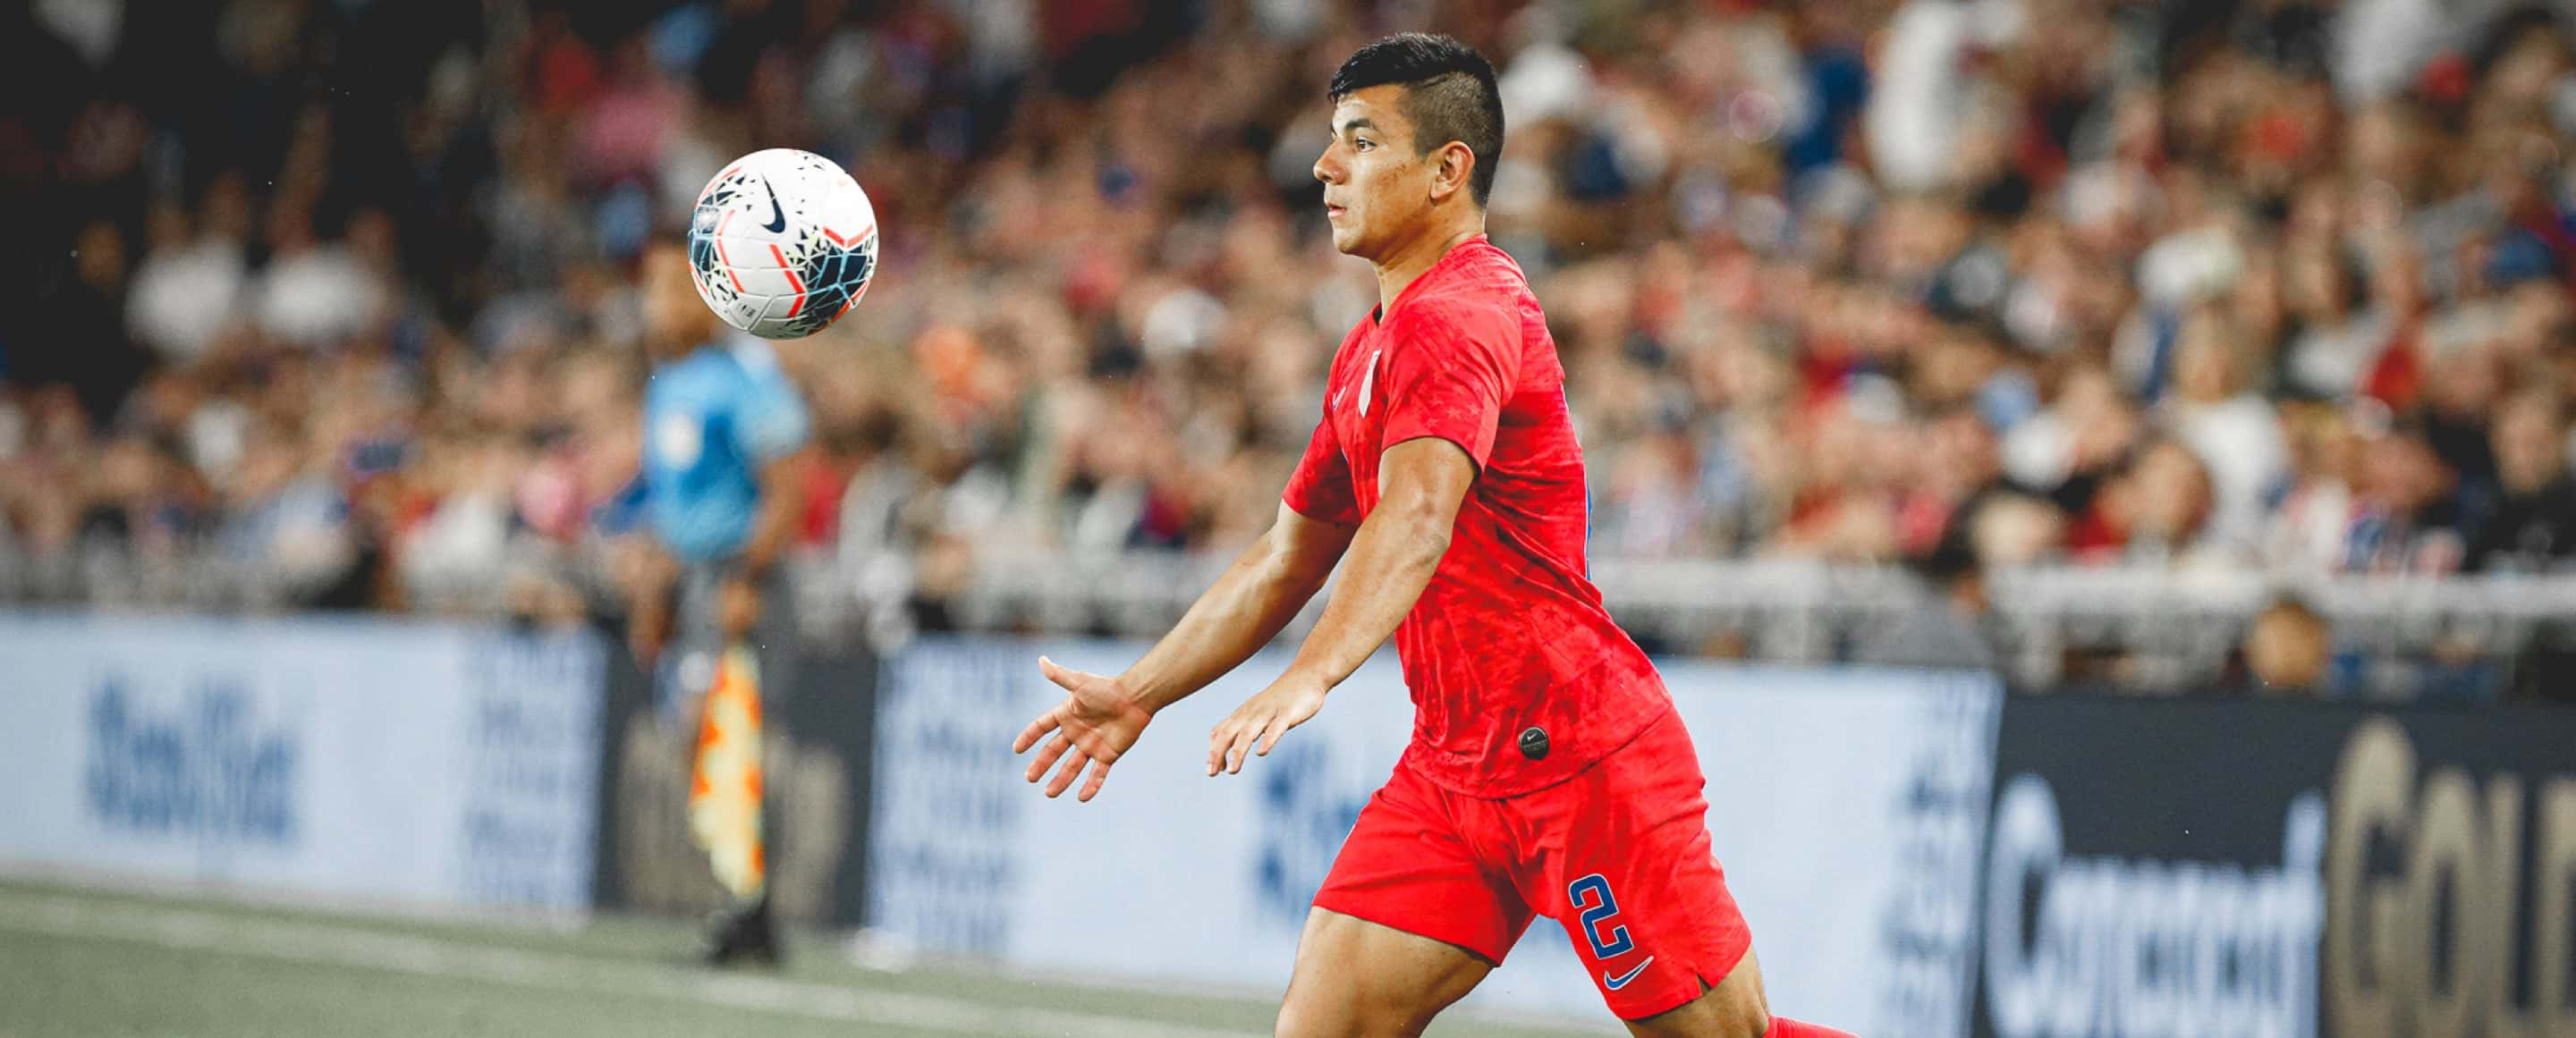 pretty nice caffe 85e0a Gold Cup 2019: USA vs. Panama - Preview, Schedule, TV ...